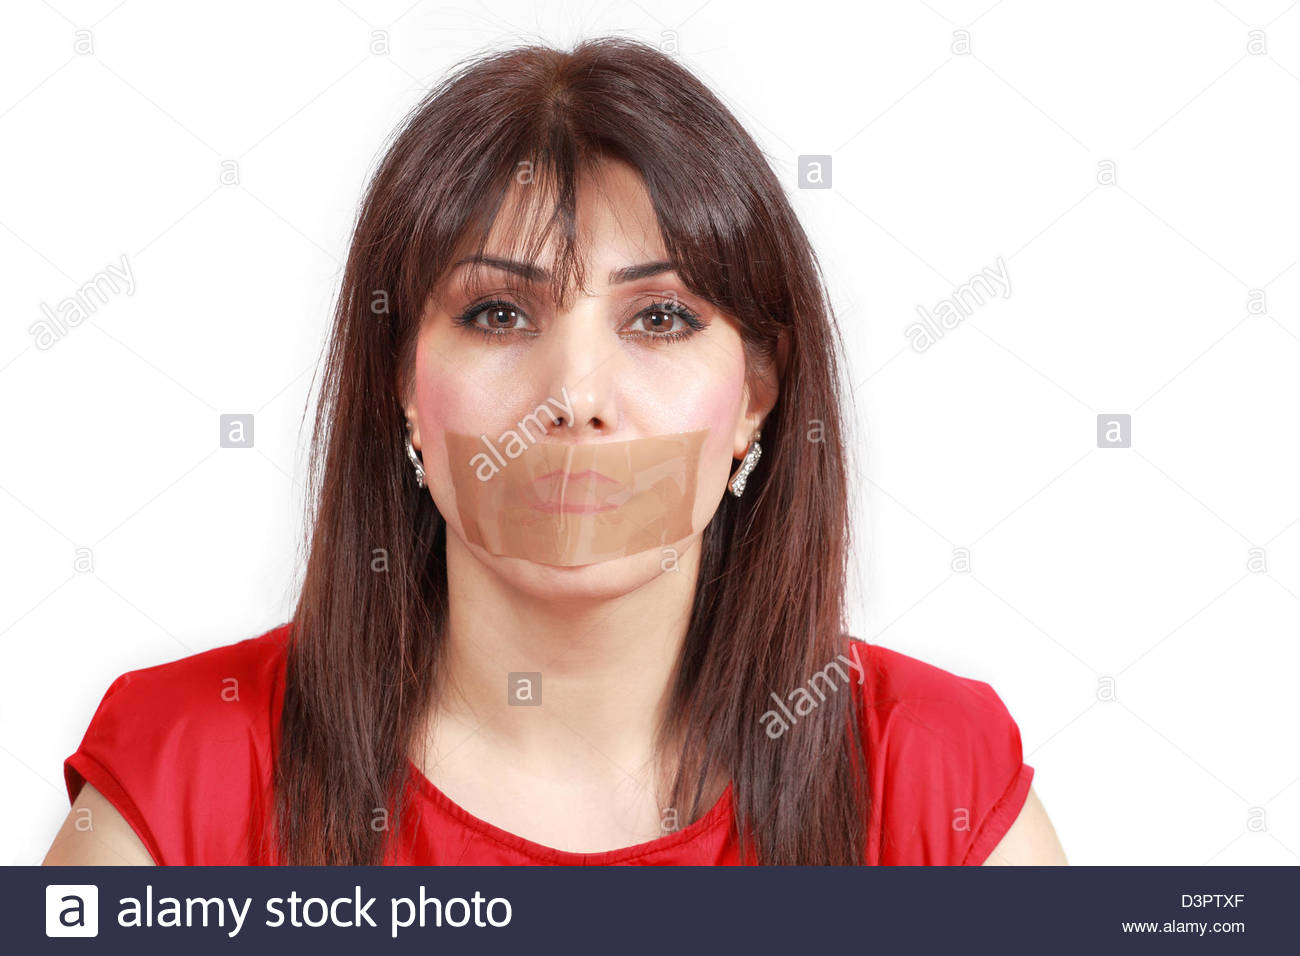 Woman Mouth Taped Stock Image